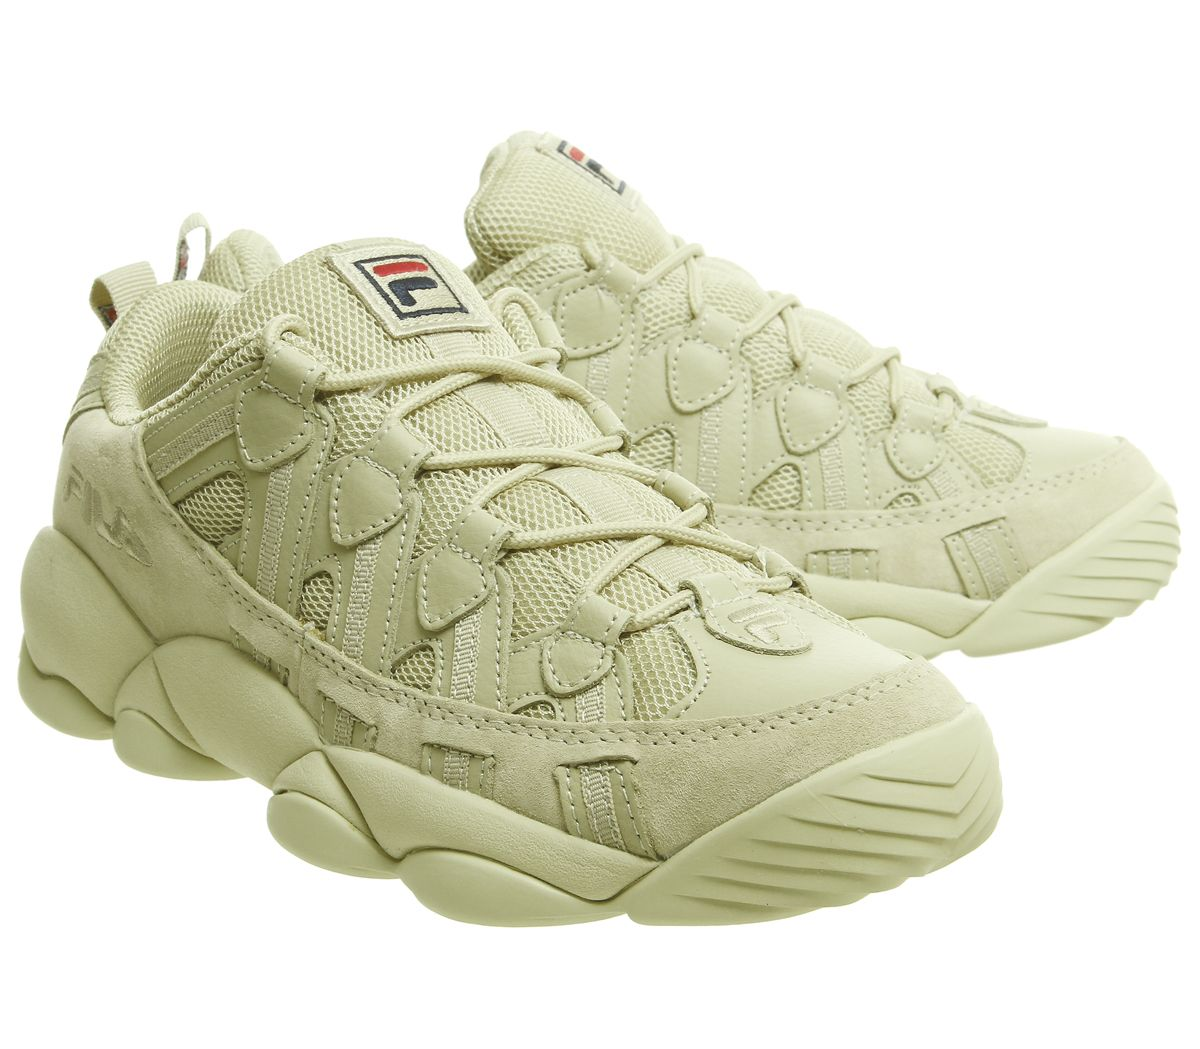 Details about Fila Spaghetti Low Trainers Fila Cream Mono Trainers Shoes